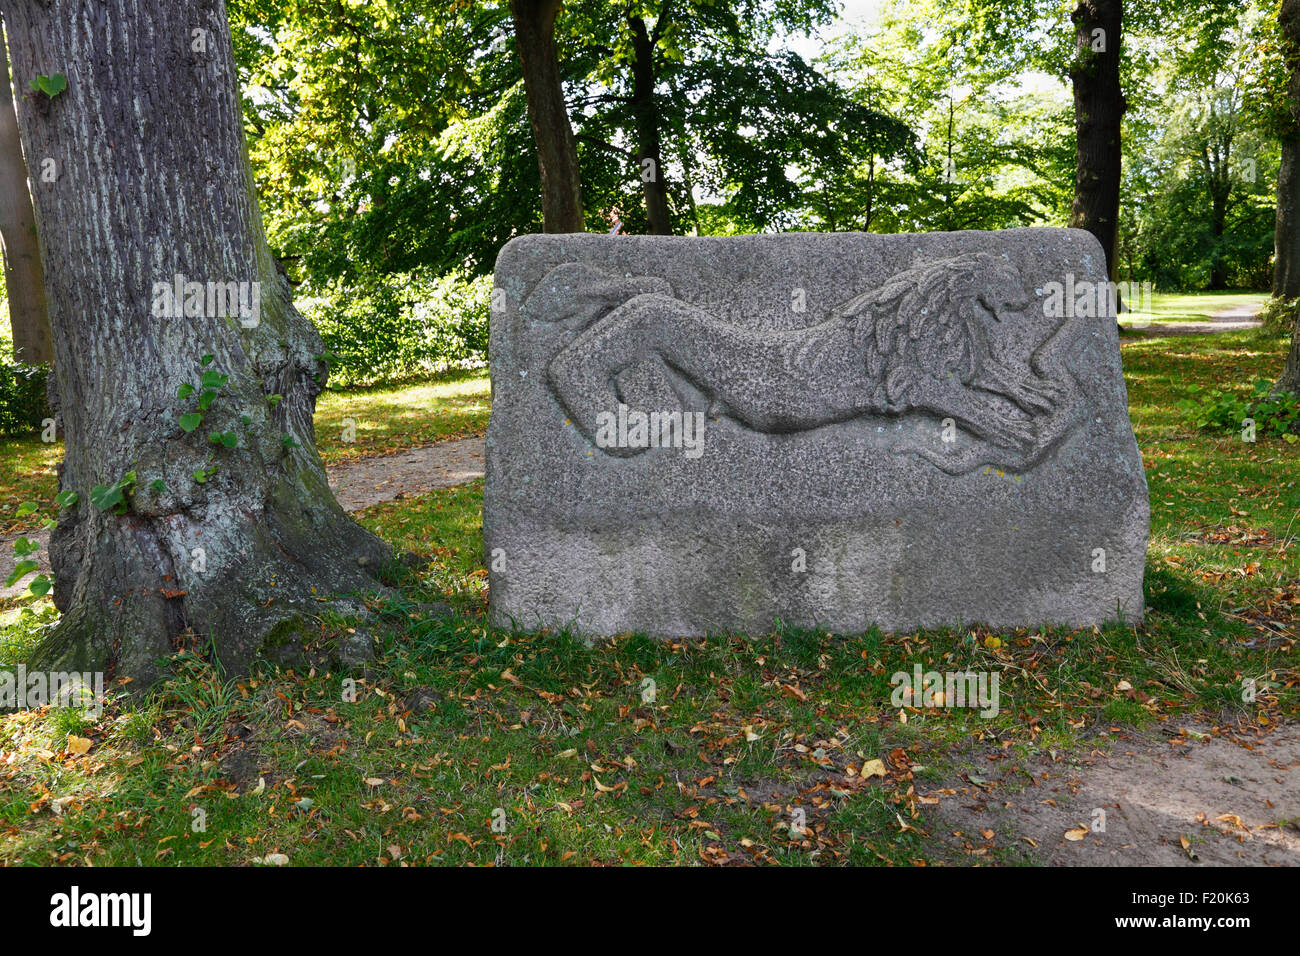 Hamlet's Grave in Marienlyst Palace Garden, Elsinore.  A large granite stone shaped like a sarcophagus. See - Stock Image